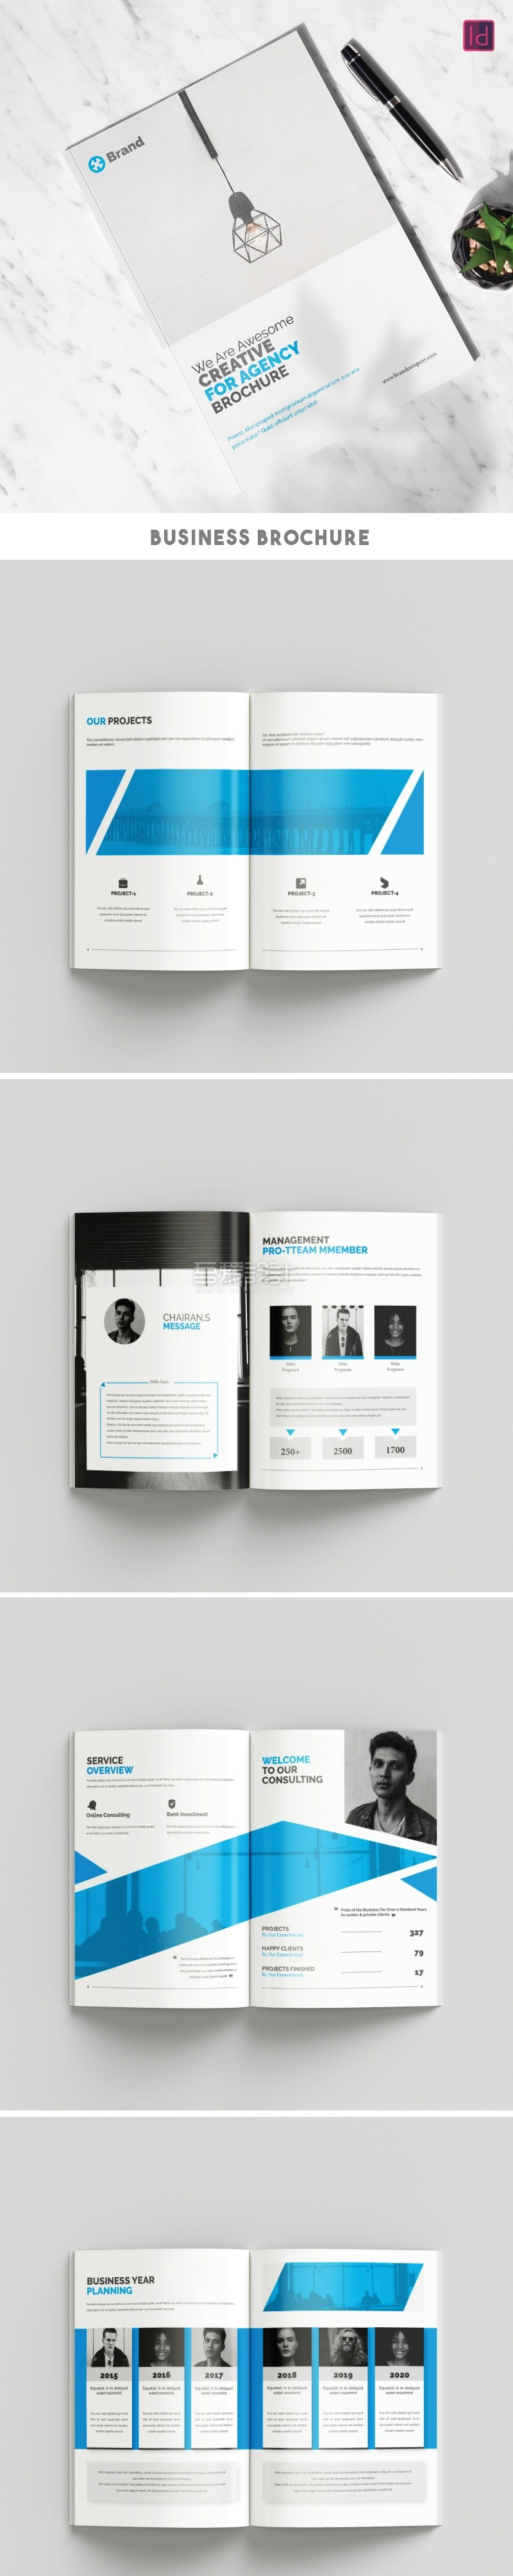 business-brochure-templates-8892237-preview